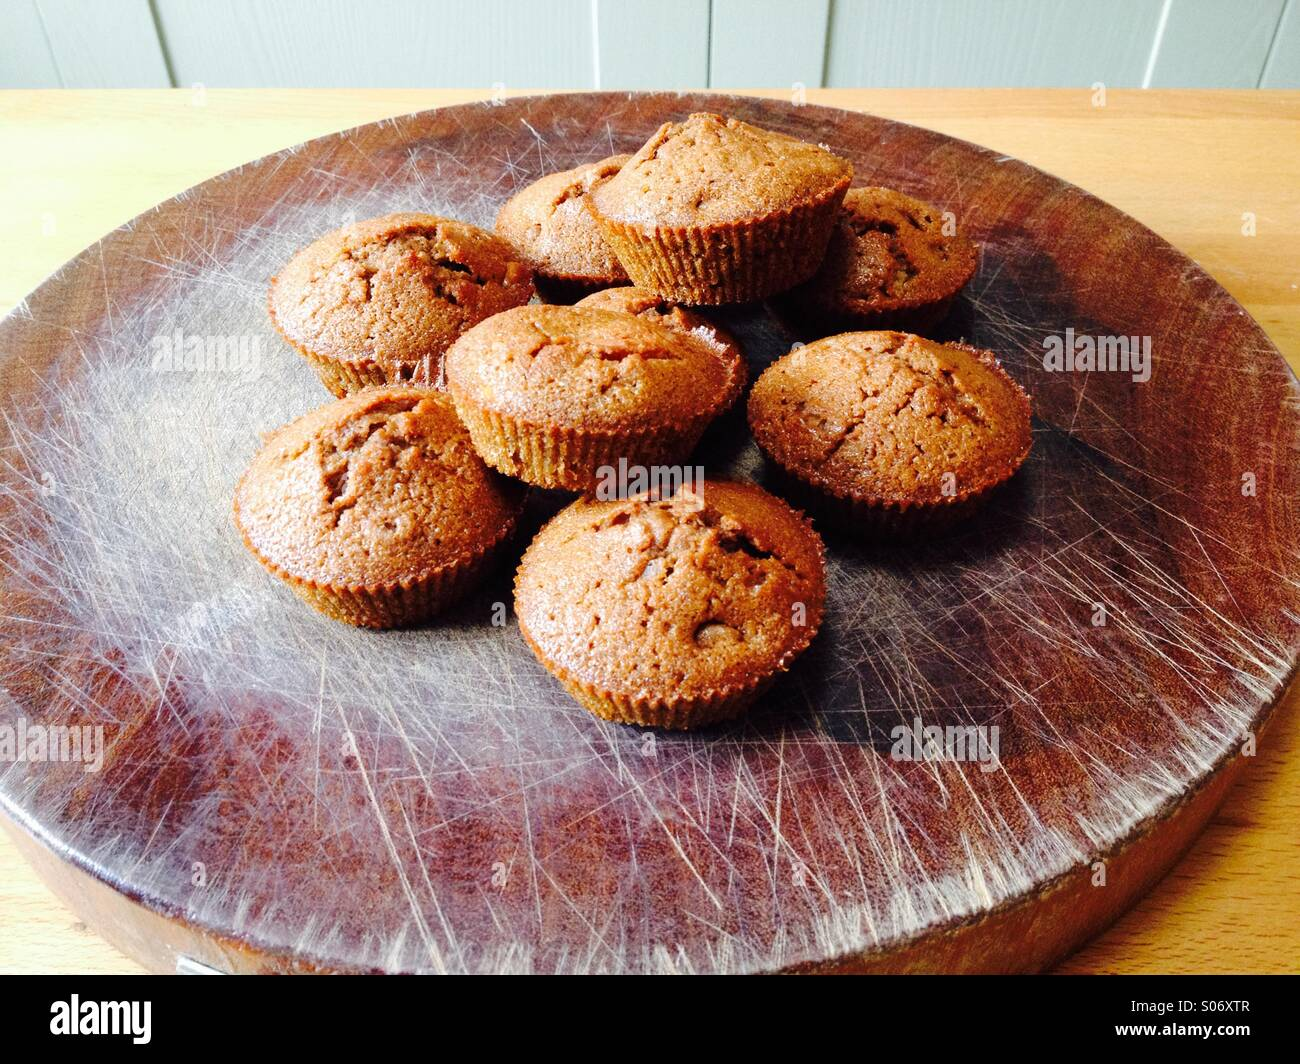 Traditional home baked cakes on a wooden background - Stock Image